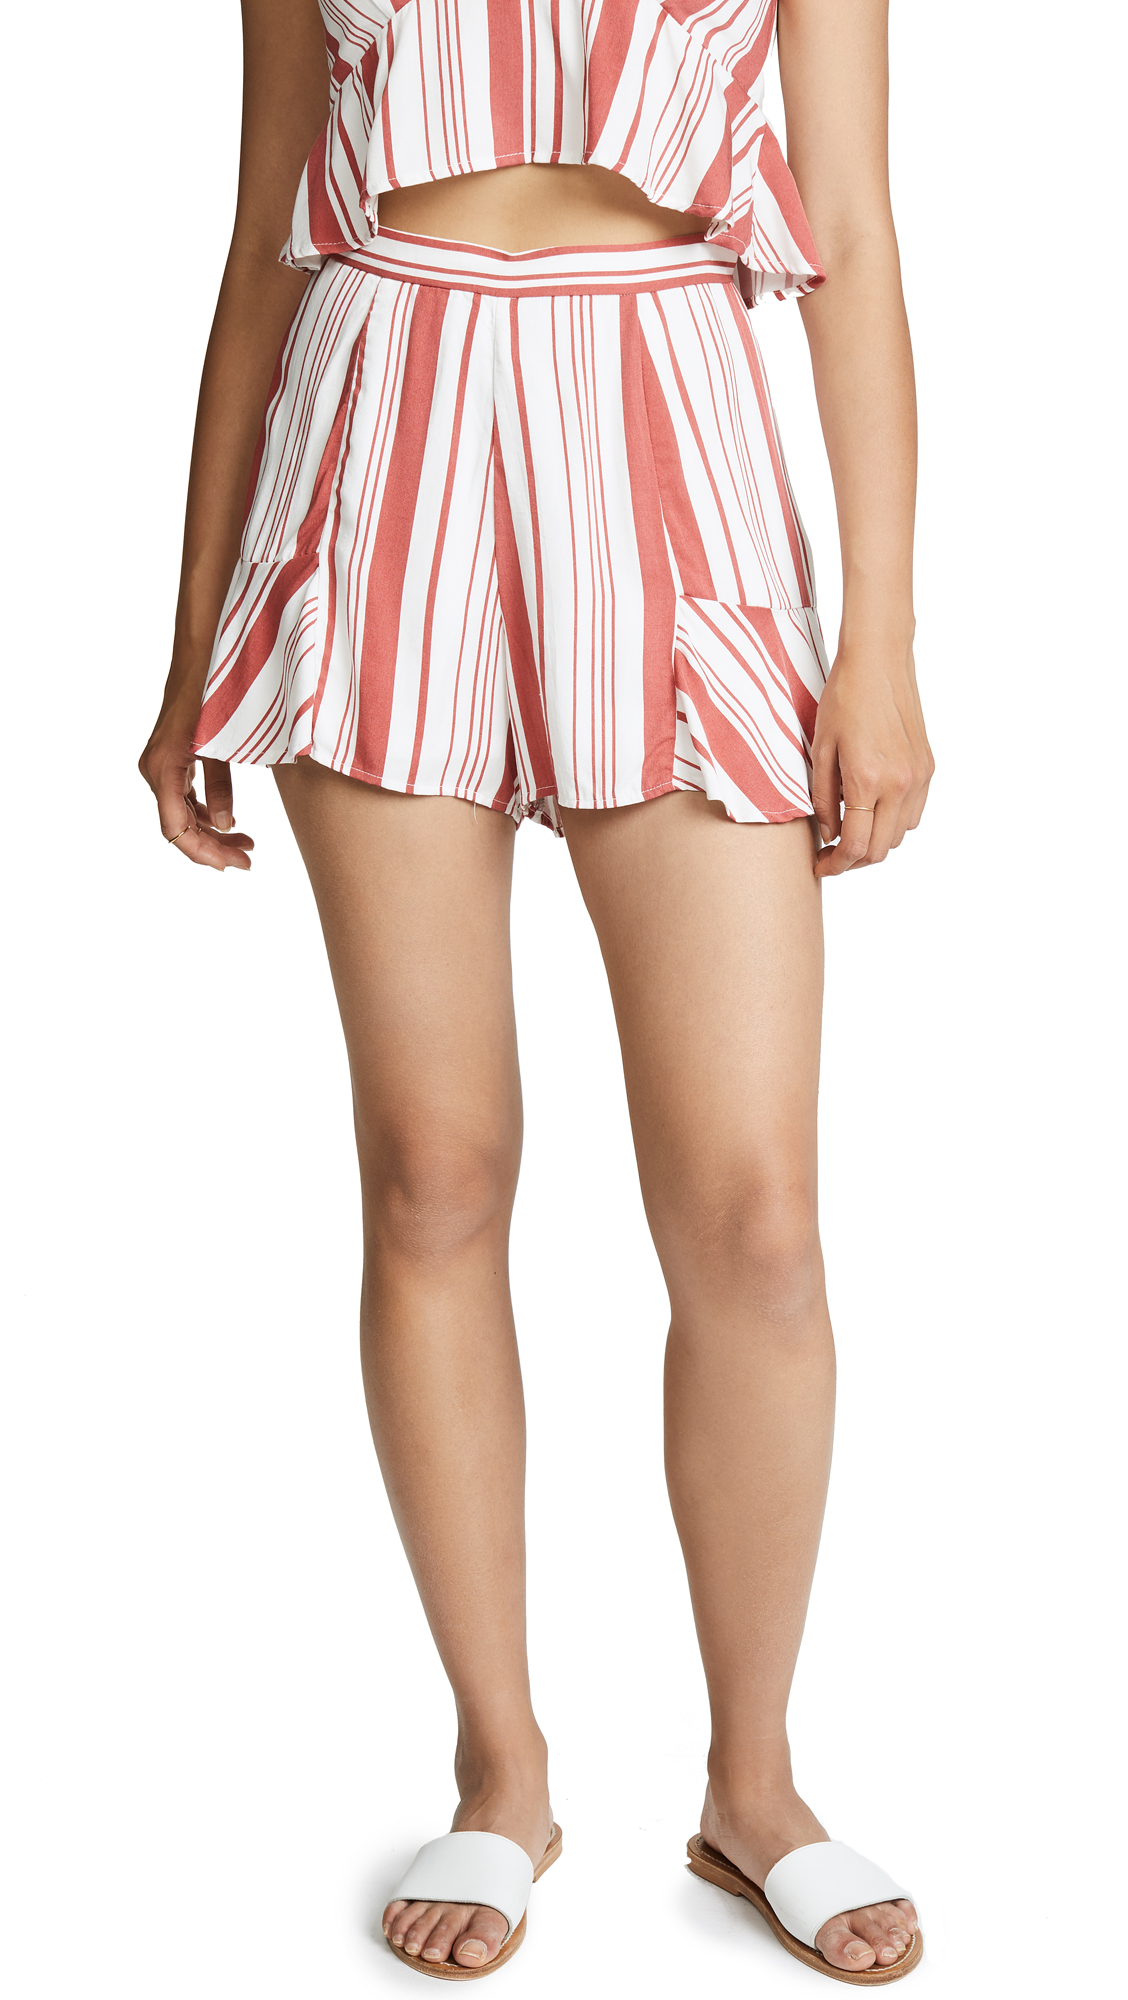 MINKPINK Stripe Fluted Shorts In Off White/Red